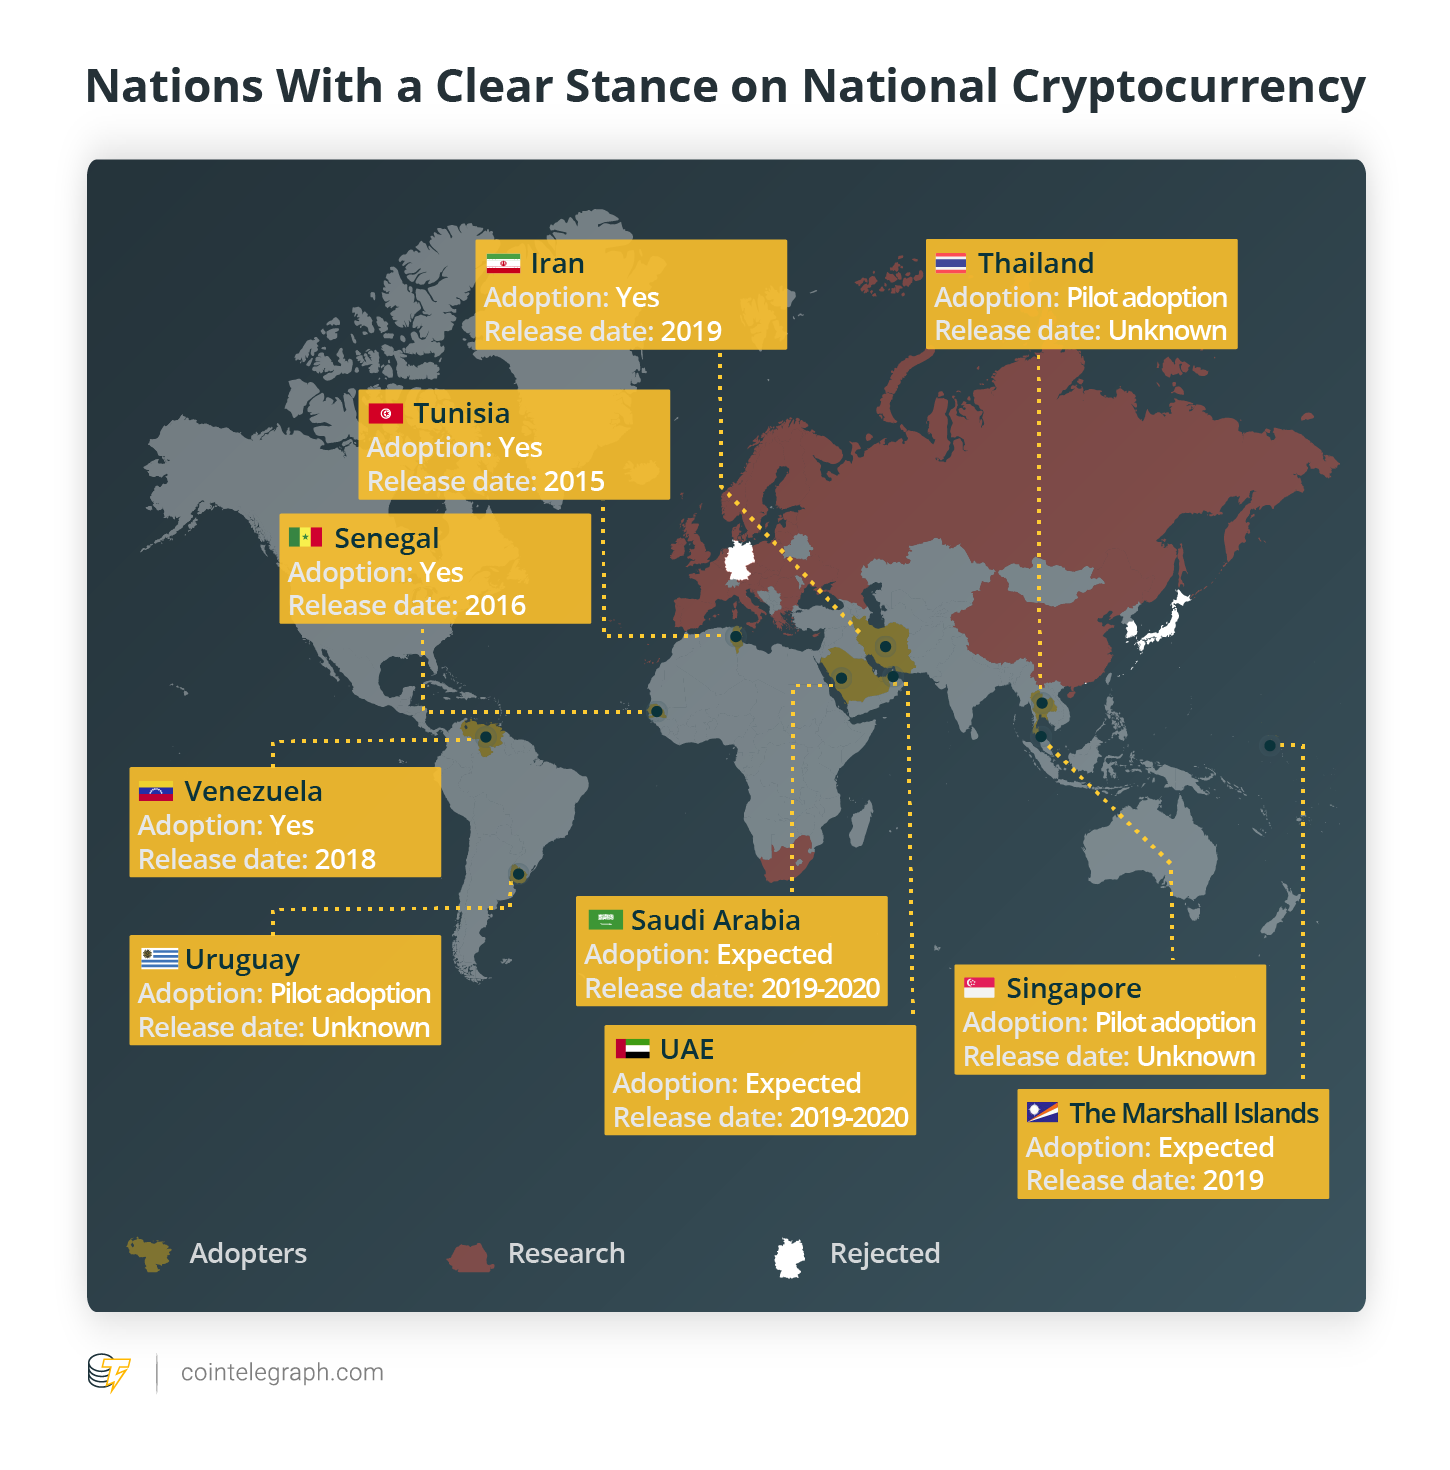 Nations With a Clear Stance on National Cryptocurrency